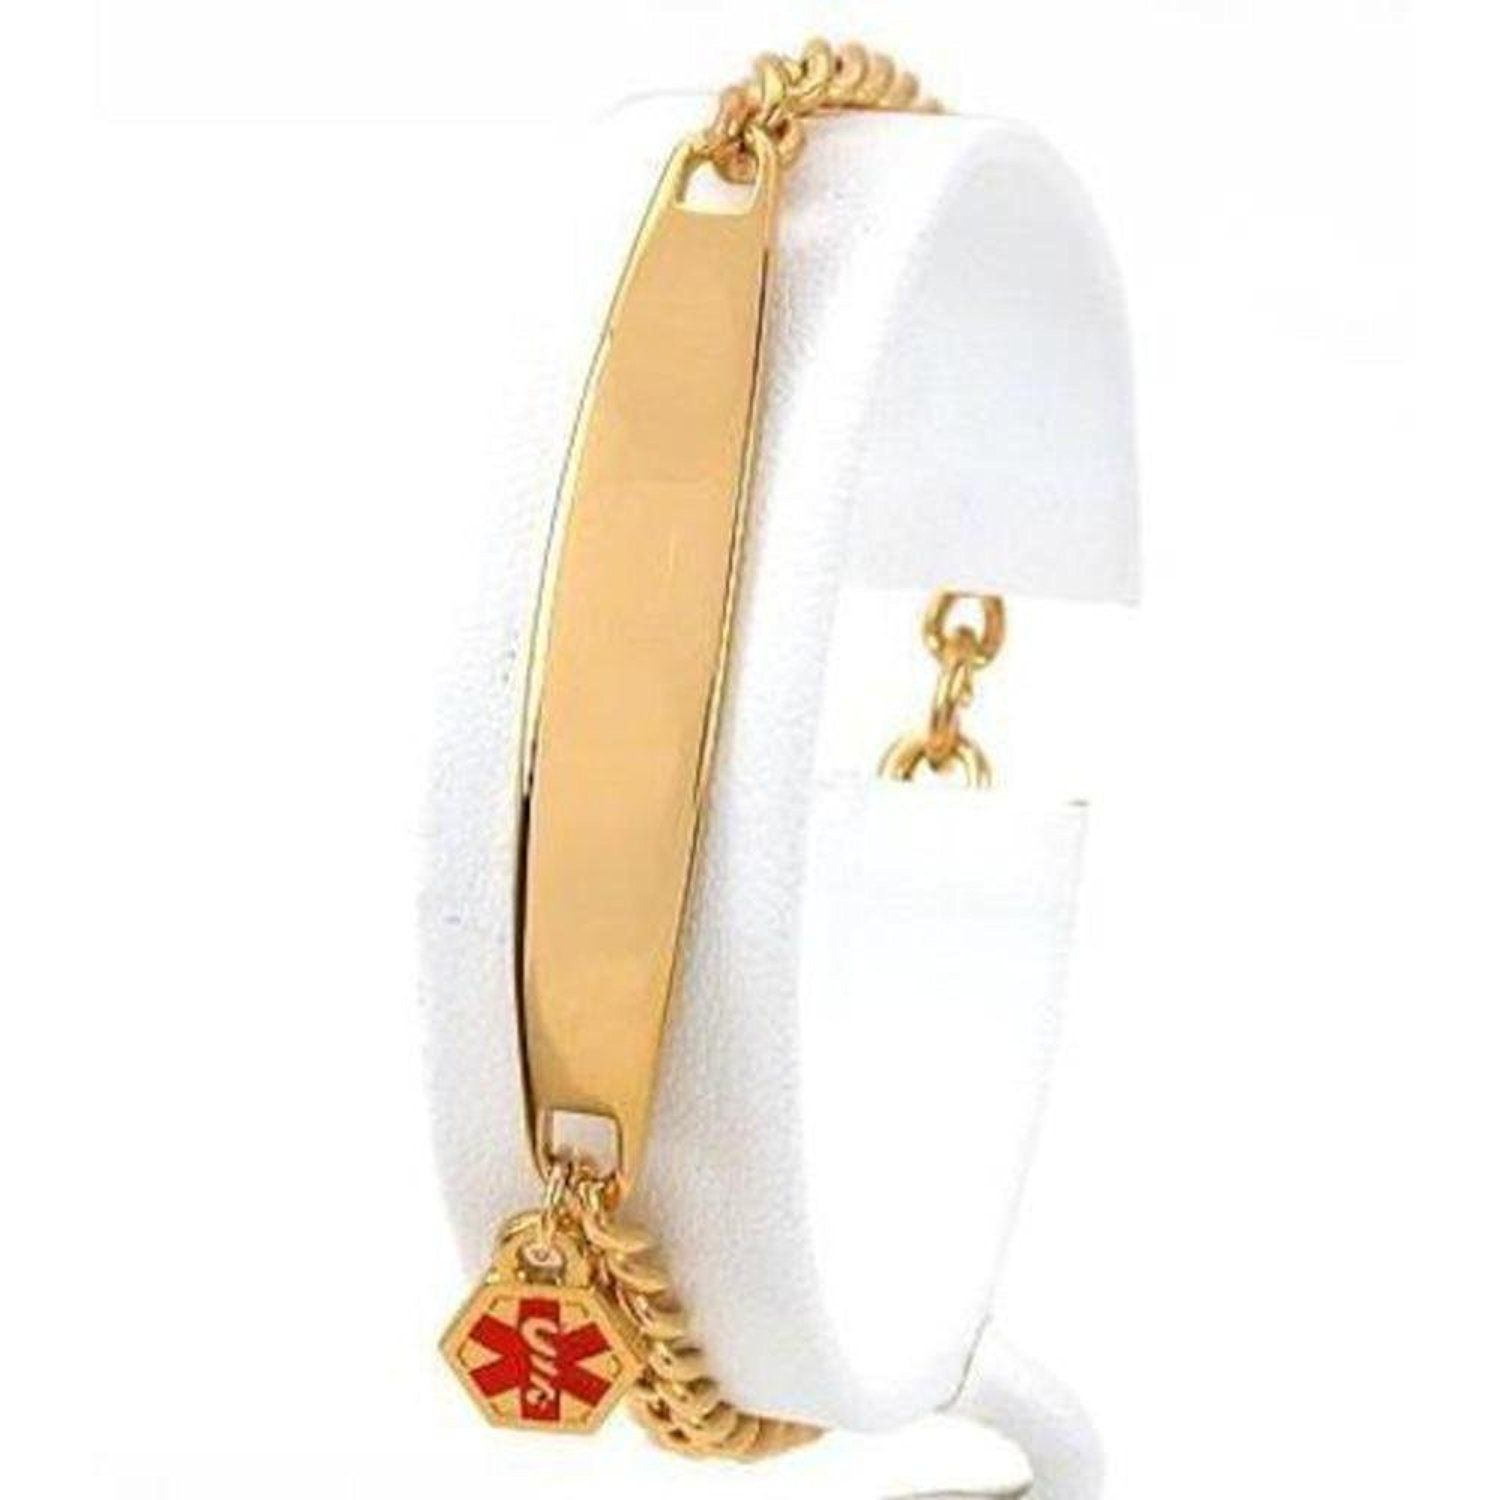 jewellery medical is steel loading information ebay stainless curve image itm bracelet blank gold id